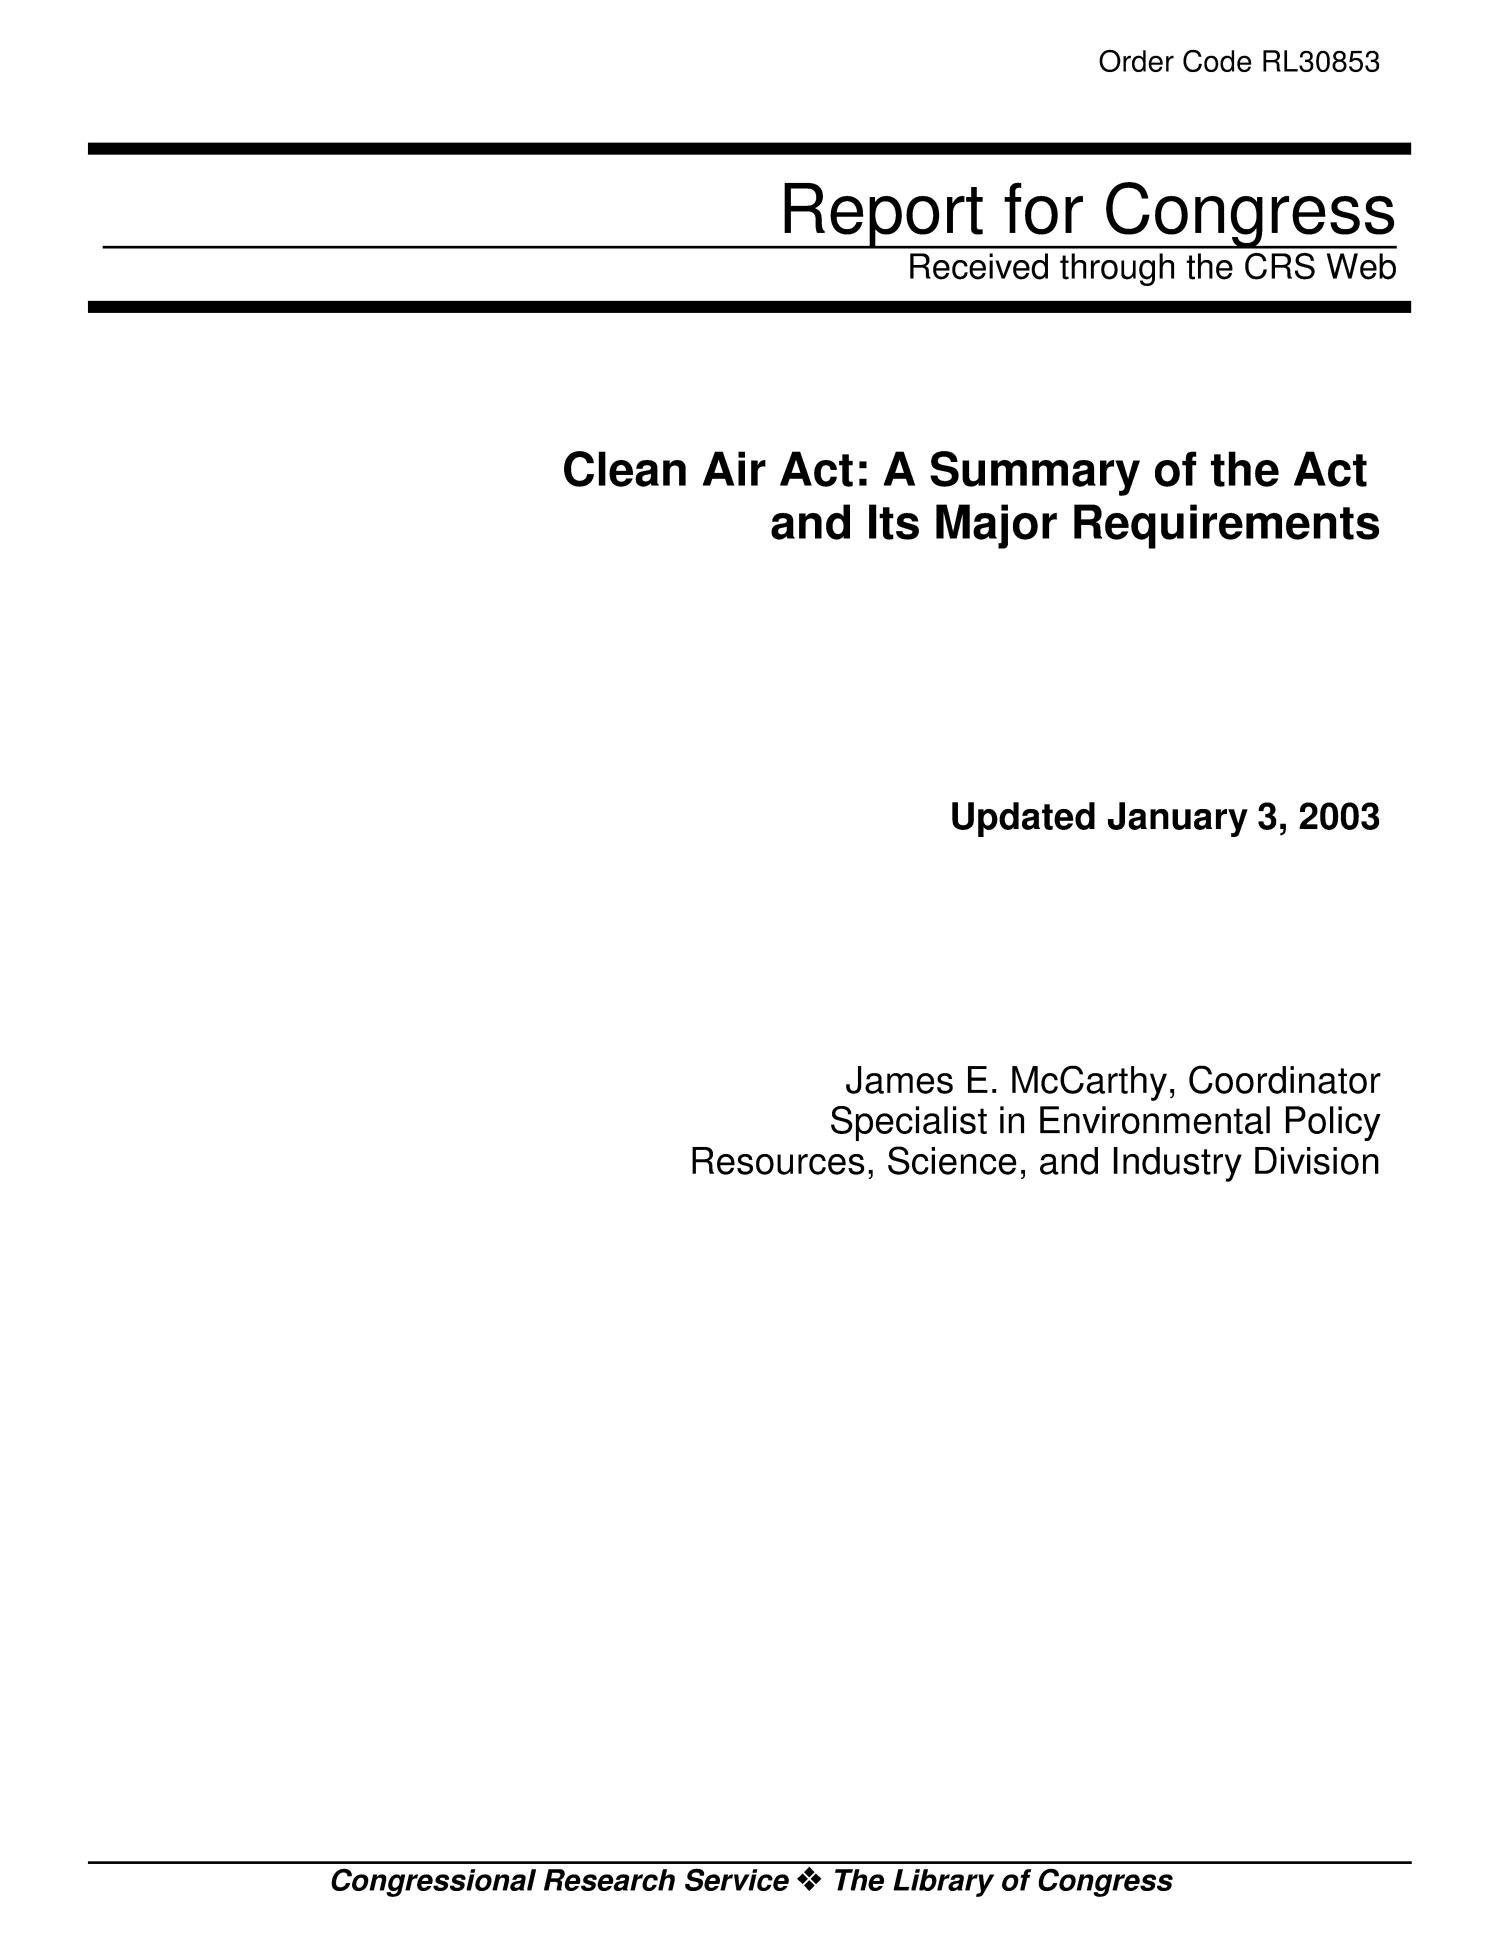 Clean Air Act: A Summary of the Act and Its Major Requirements                                                                                                      [Sequence #]: 1 of 25